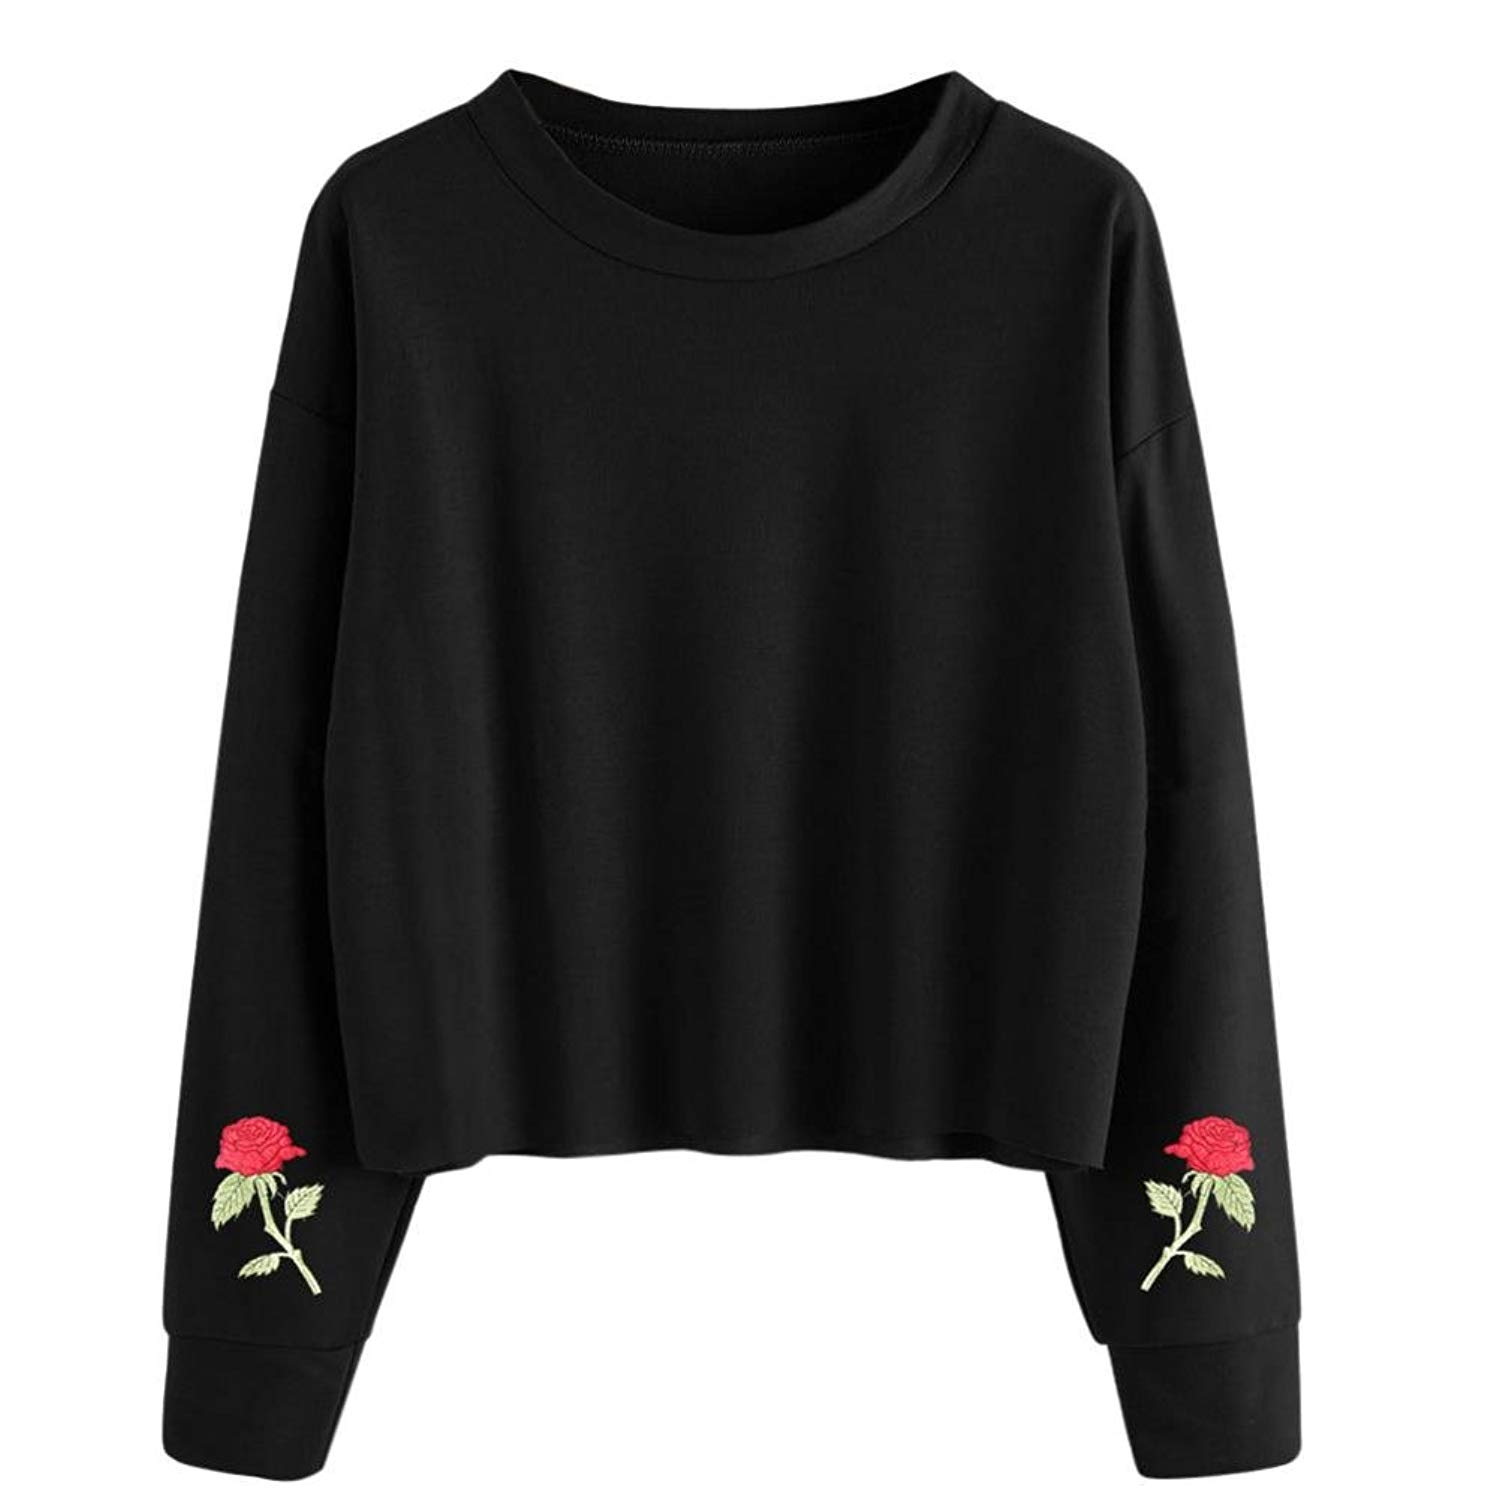 UPLOTER__Shirts Womens Embroidery Pullover Long Sleeve Blouse Pullover Tops